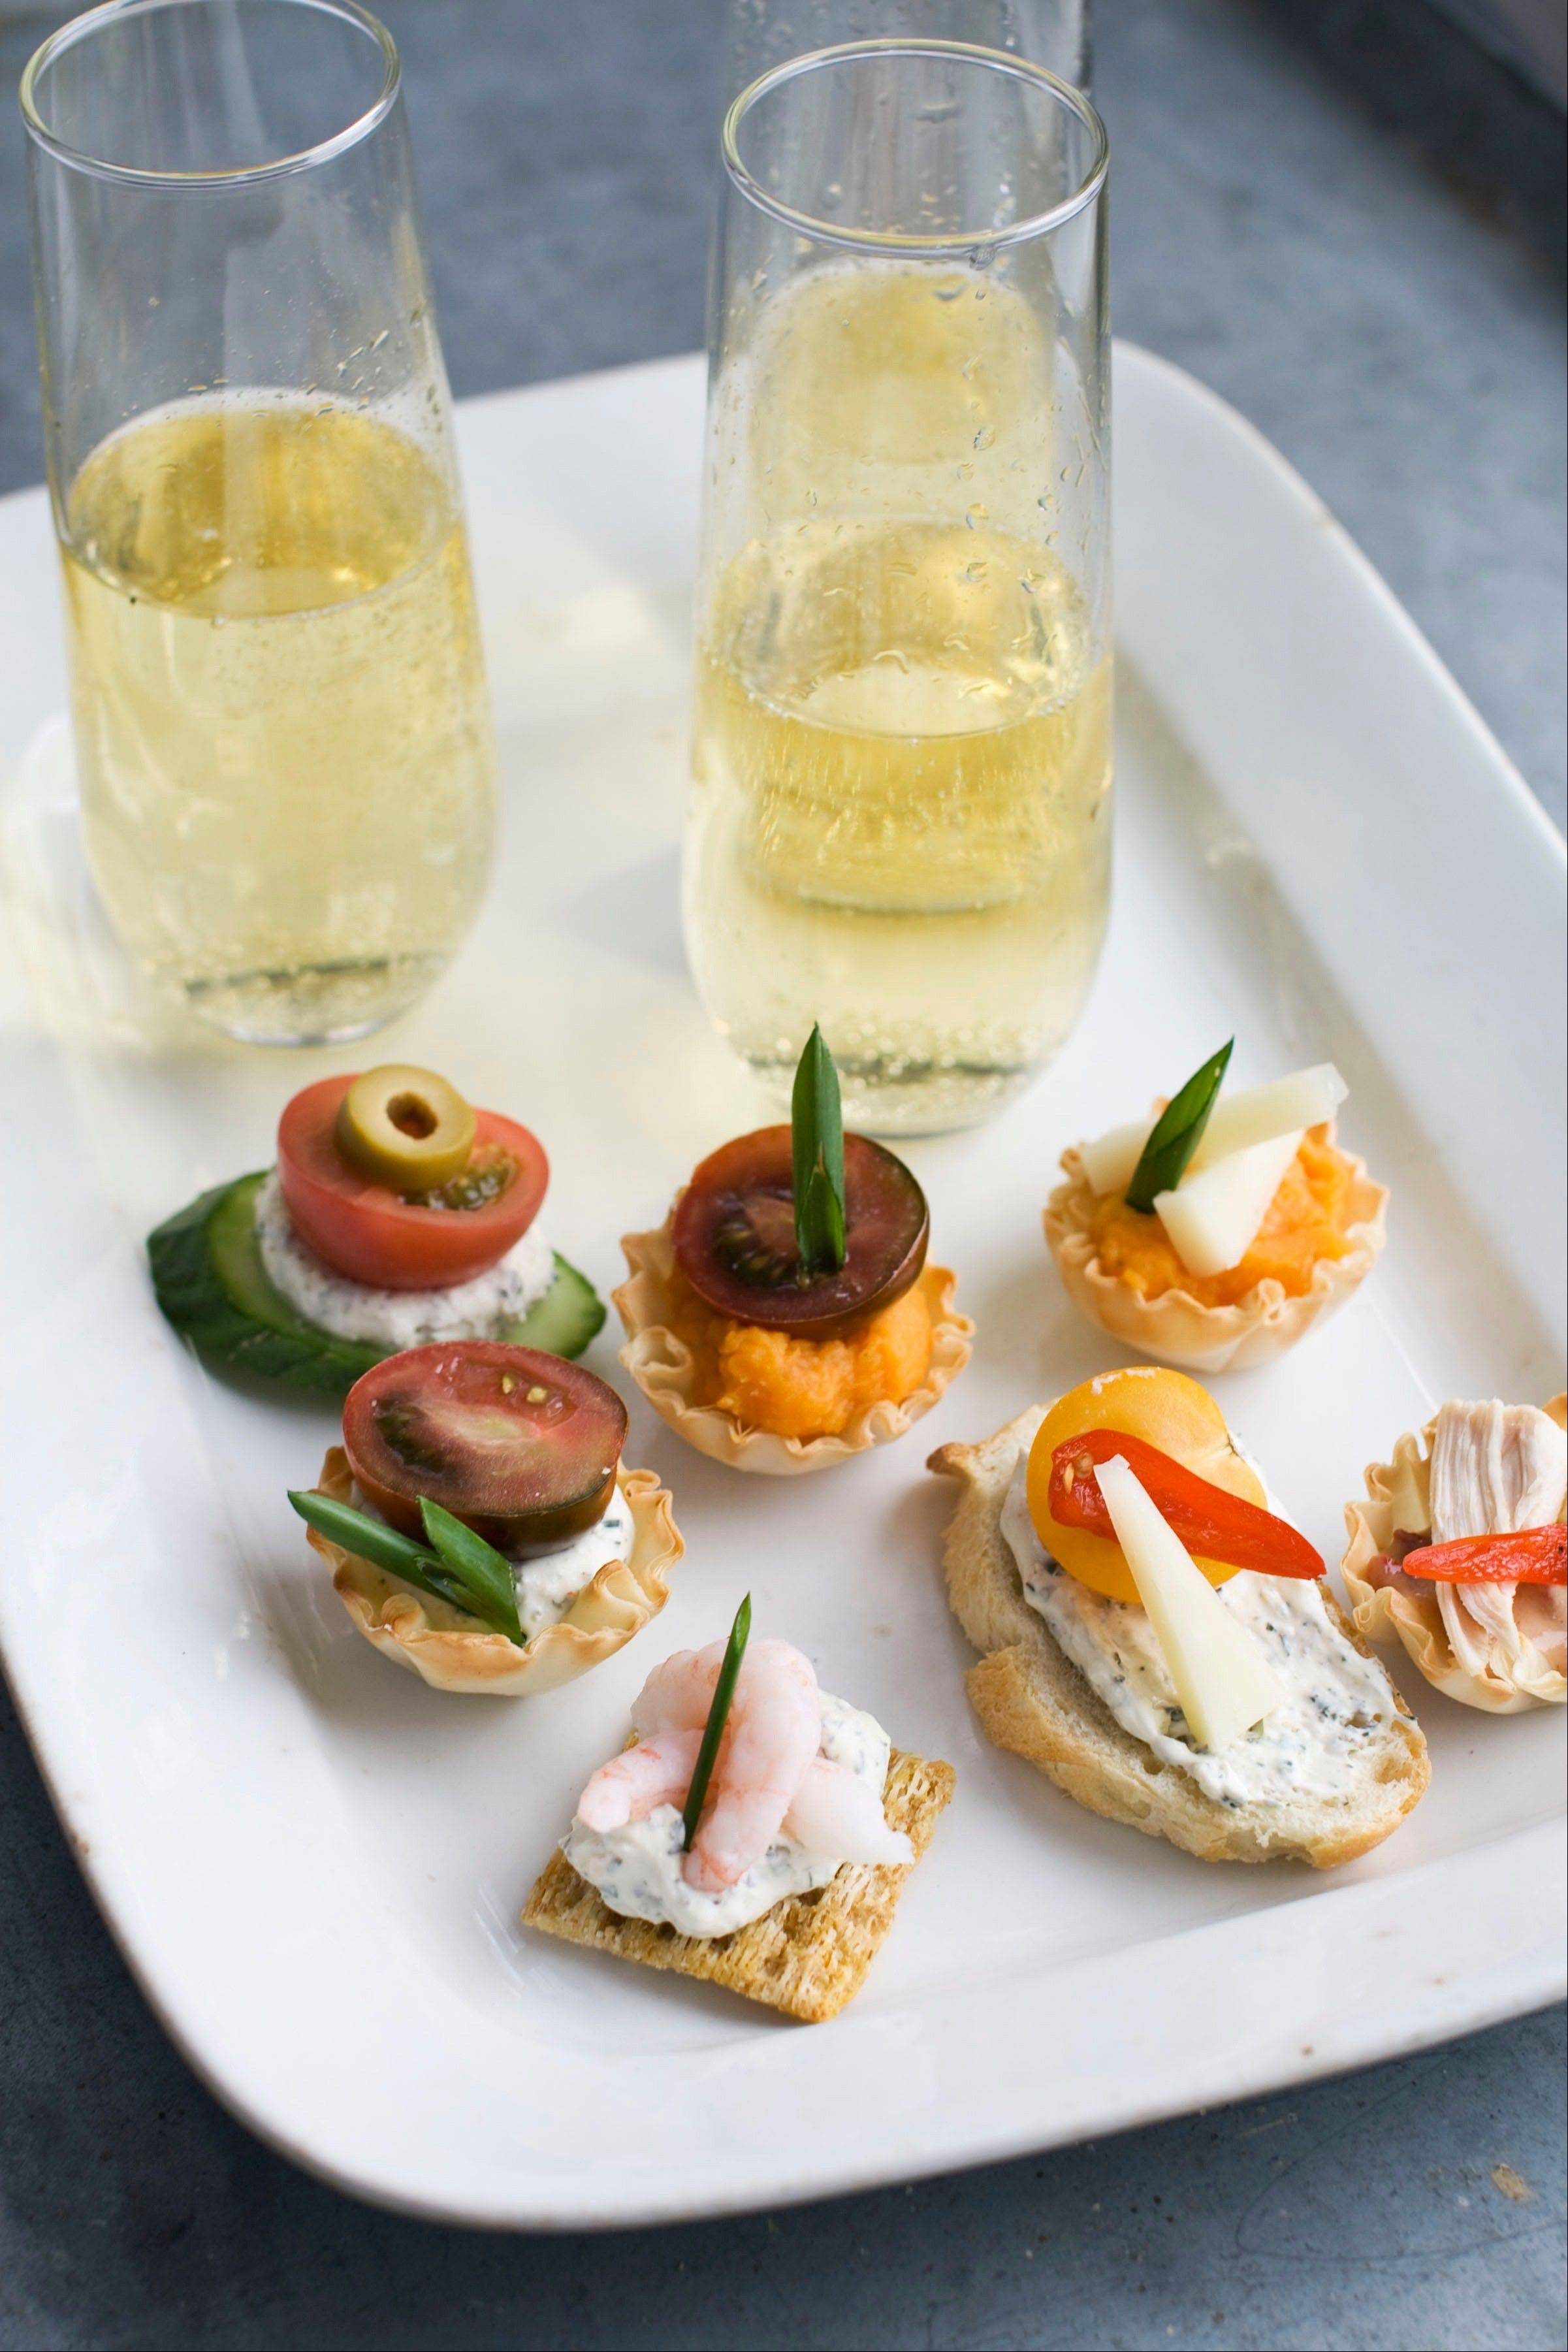 Using a building block approach to Oscar party canapes, guests can select from a buffet of ingredients � from bases and spreads to toppings and garnishes � to design snacks that suit their preferences.